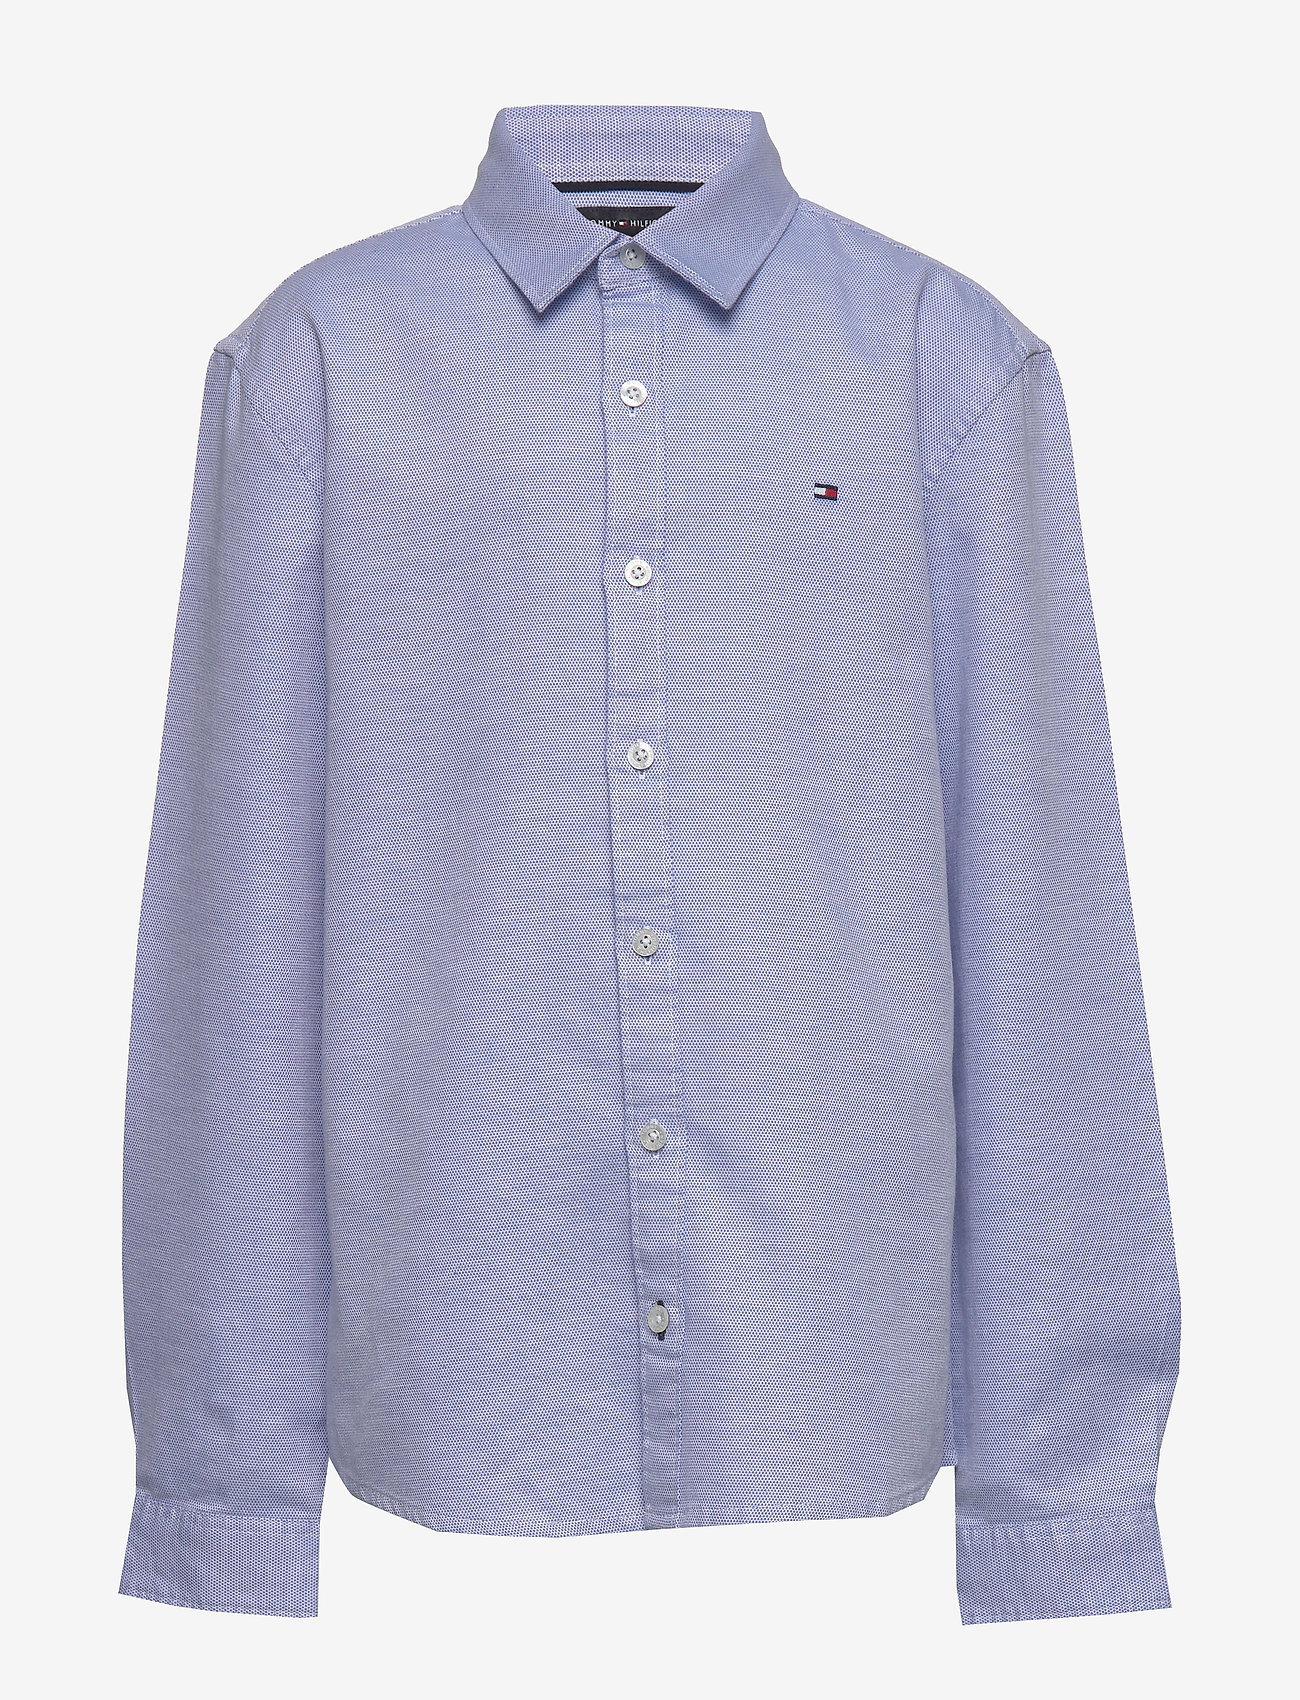 Tommy Hilfiger - STRUCTURED LINEN SHI - shirts - regatta/white - 0